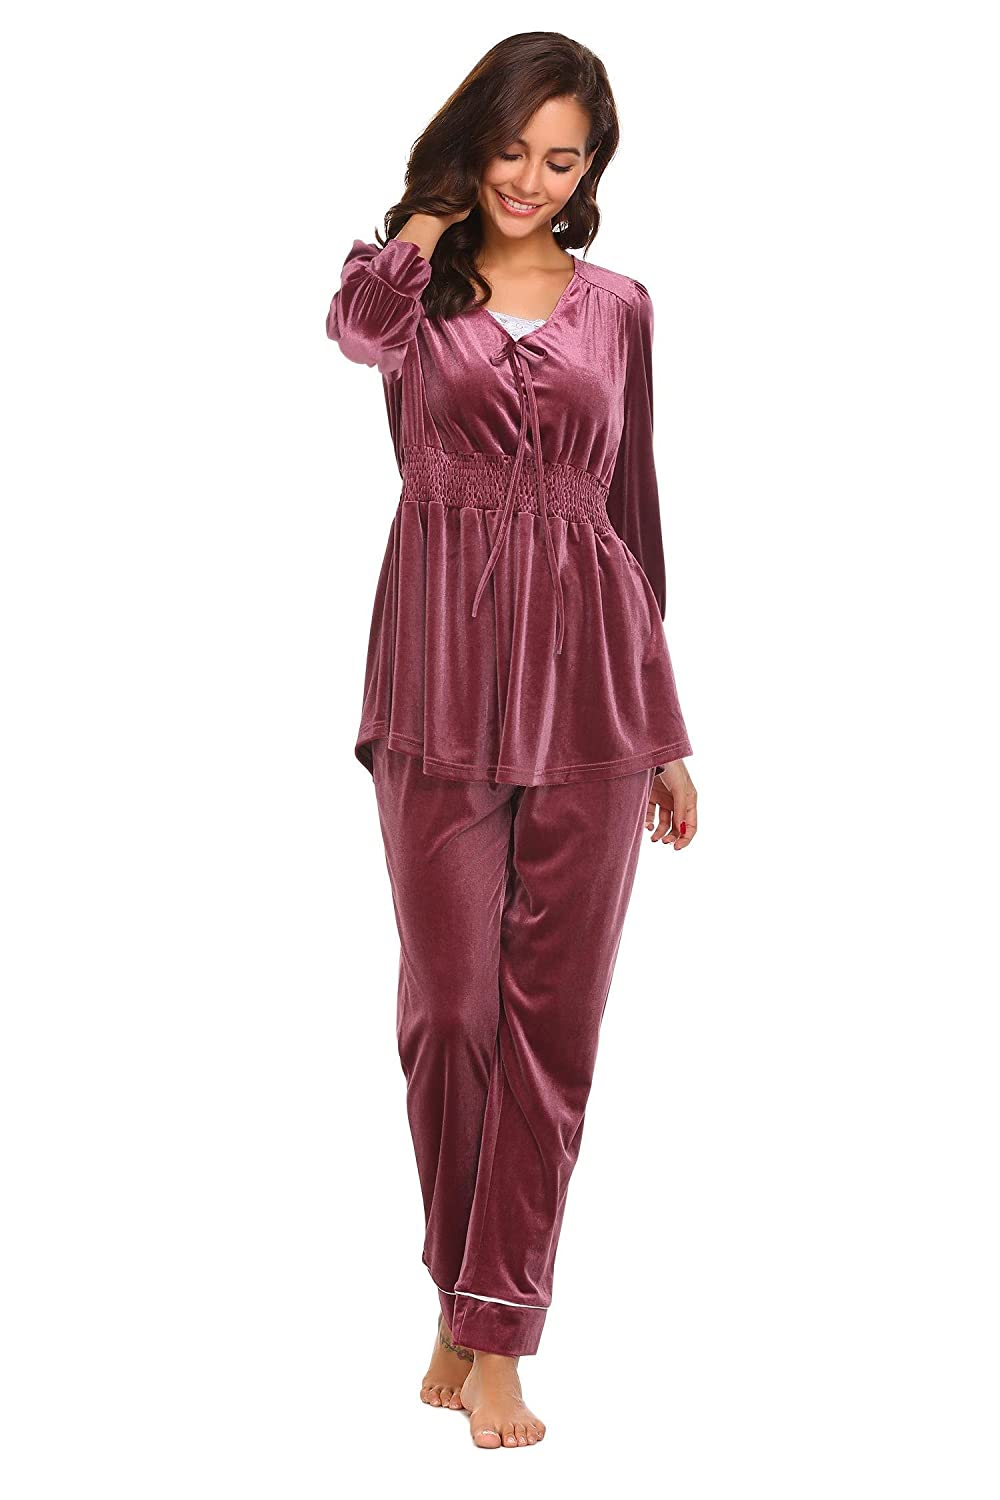 a3c78771f0 etuoji Womens Long Sleeve Solid Elastic Waist Velvet Pajamas Sets Winter  Thermal Loung Wear at Amazon Women s Clothing store